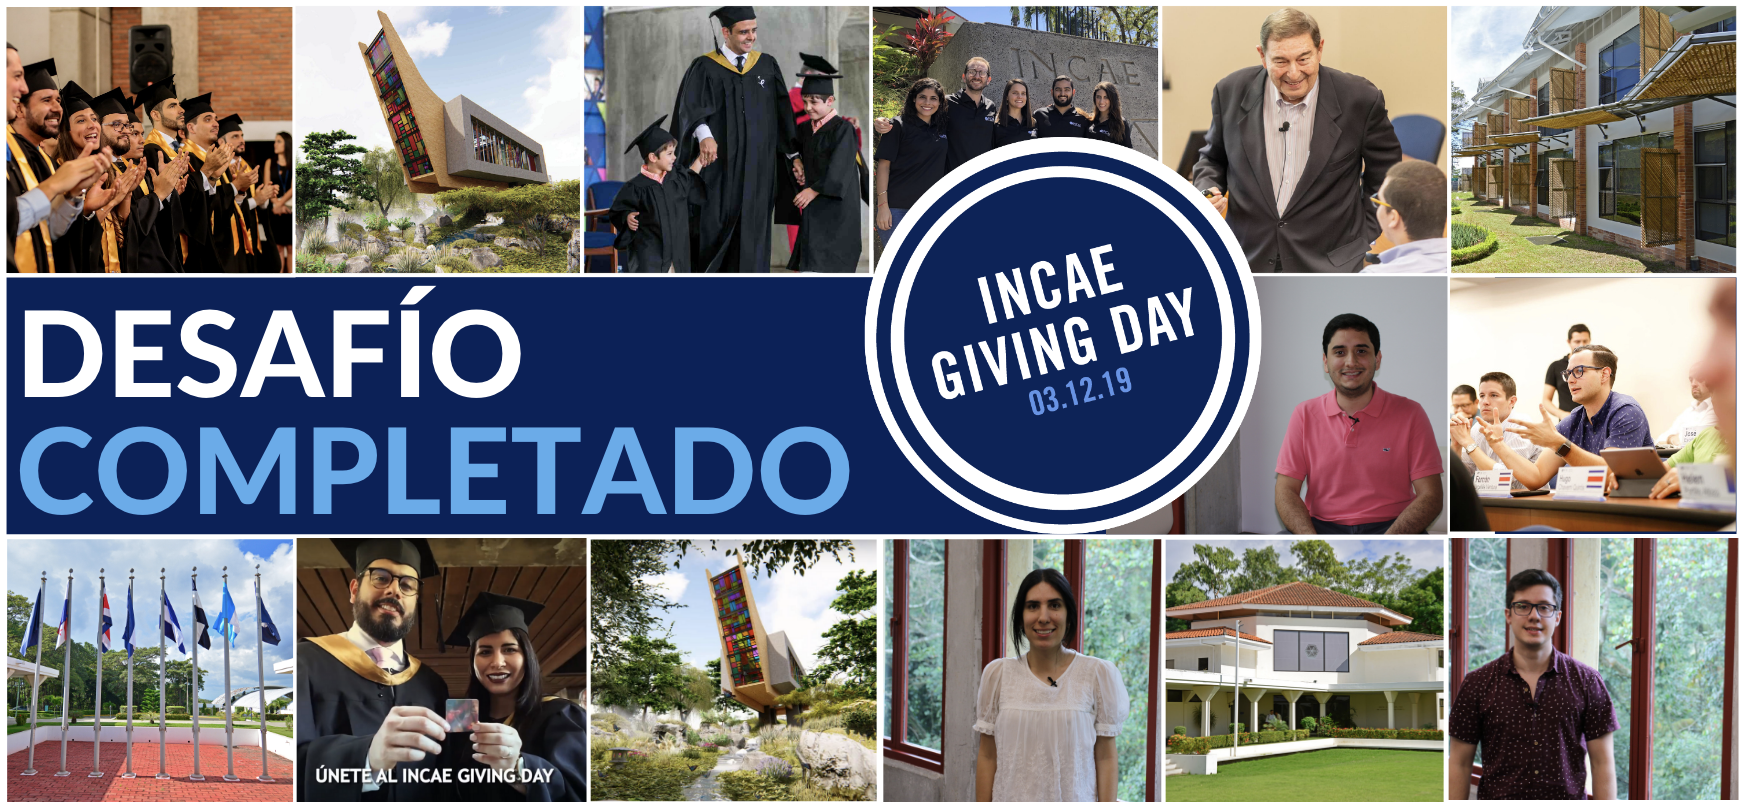 INCAE Giving Day 2019 image